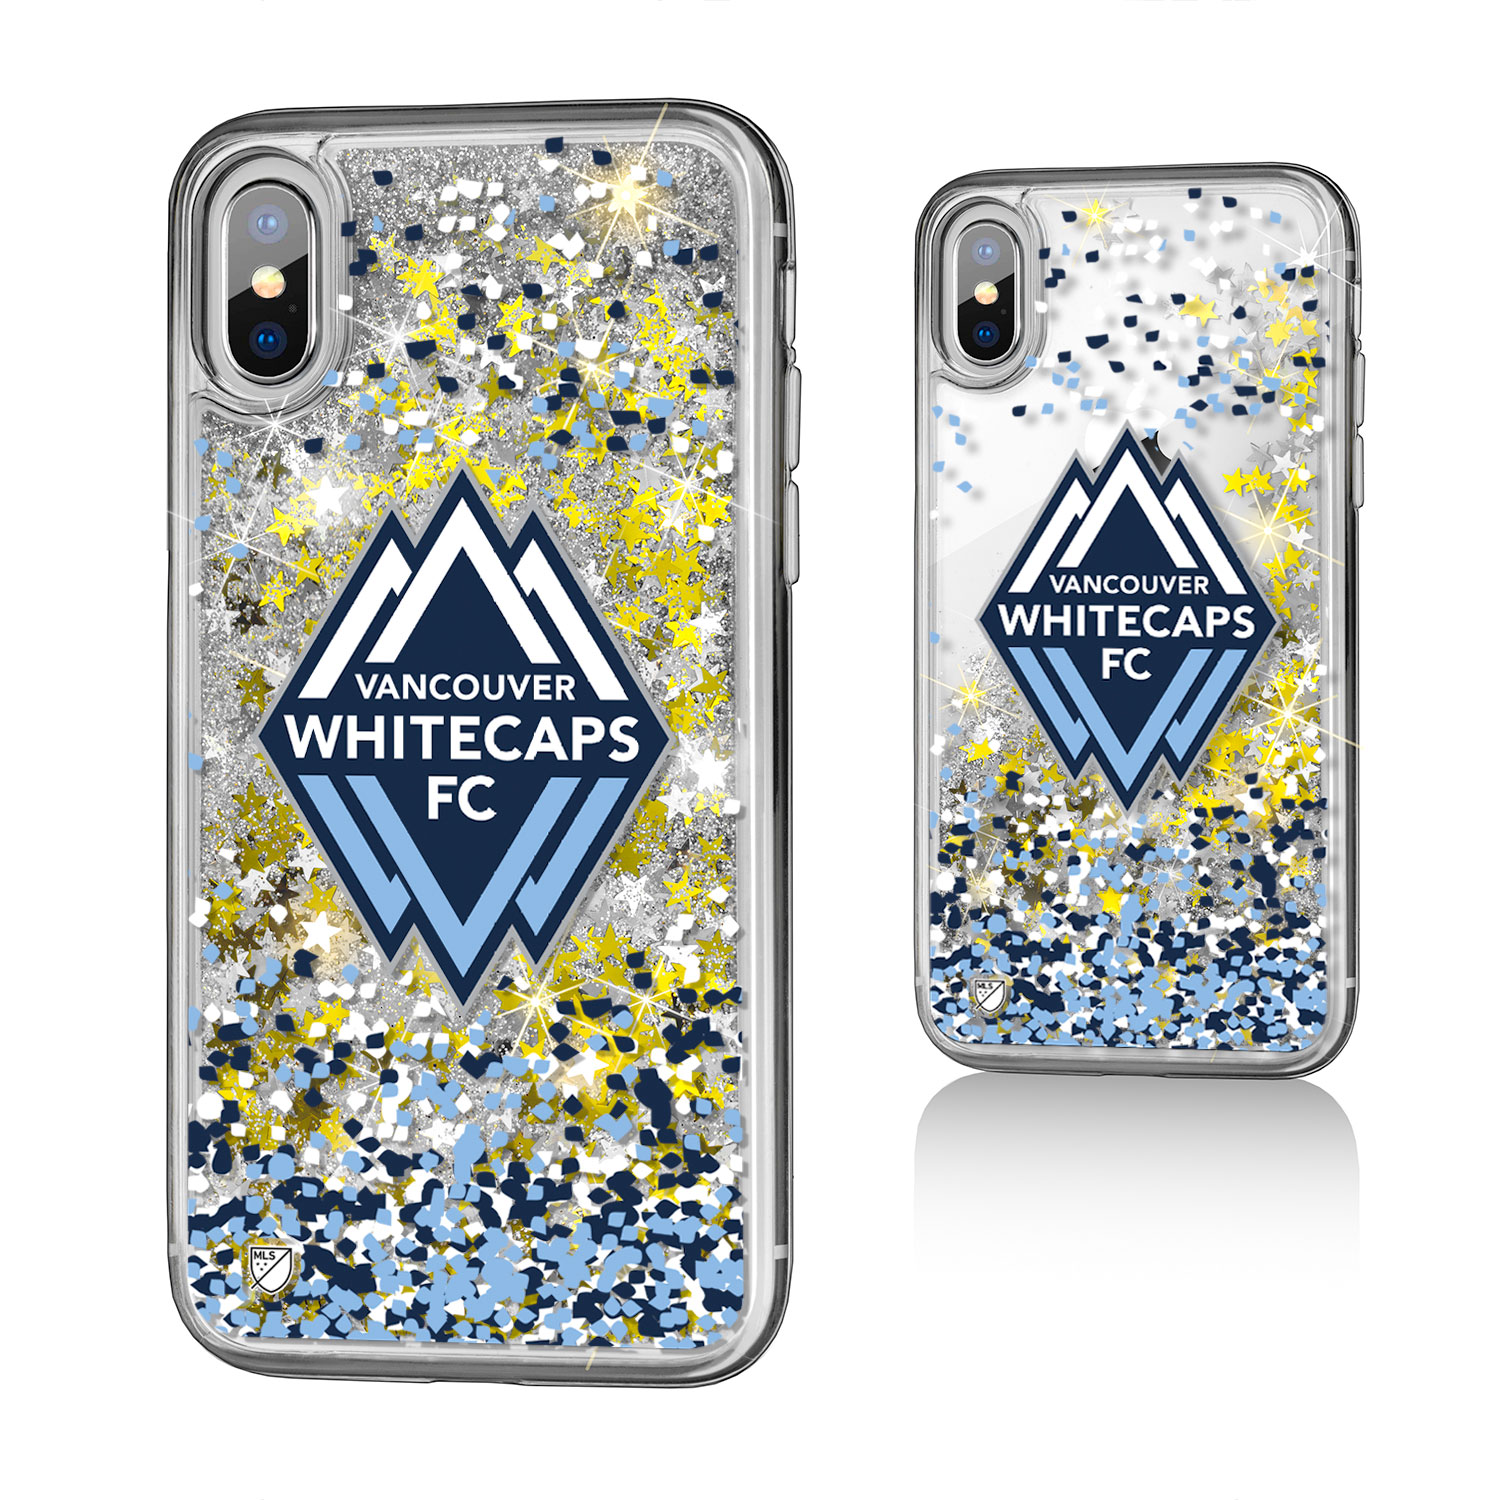 Vancouver Whitecaps SINCE 1974 Confetti Glitter Case for iPhone X